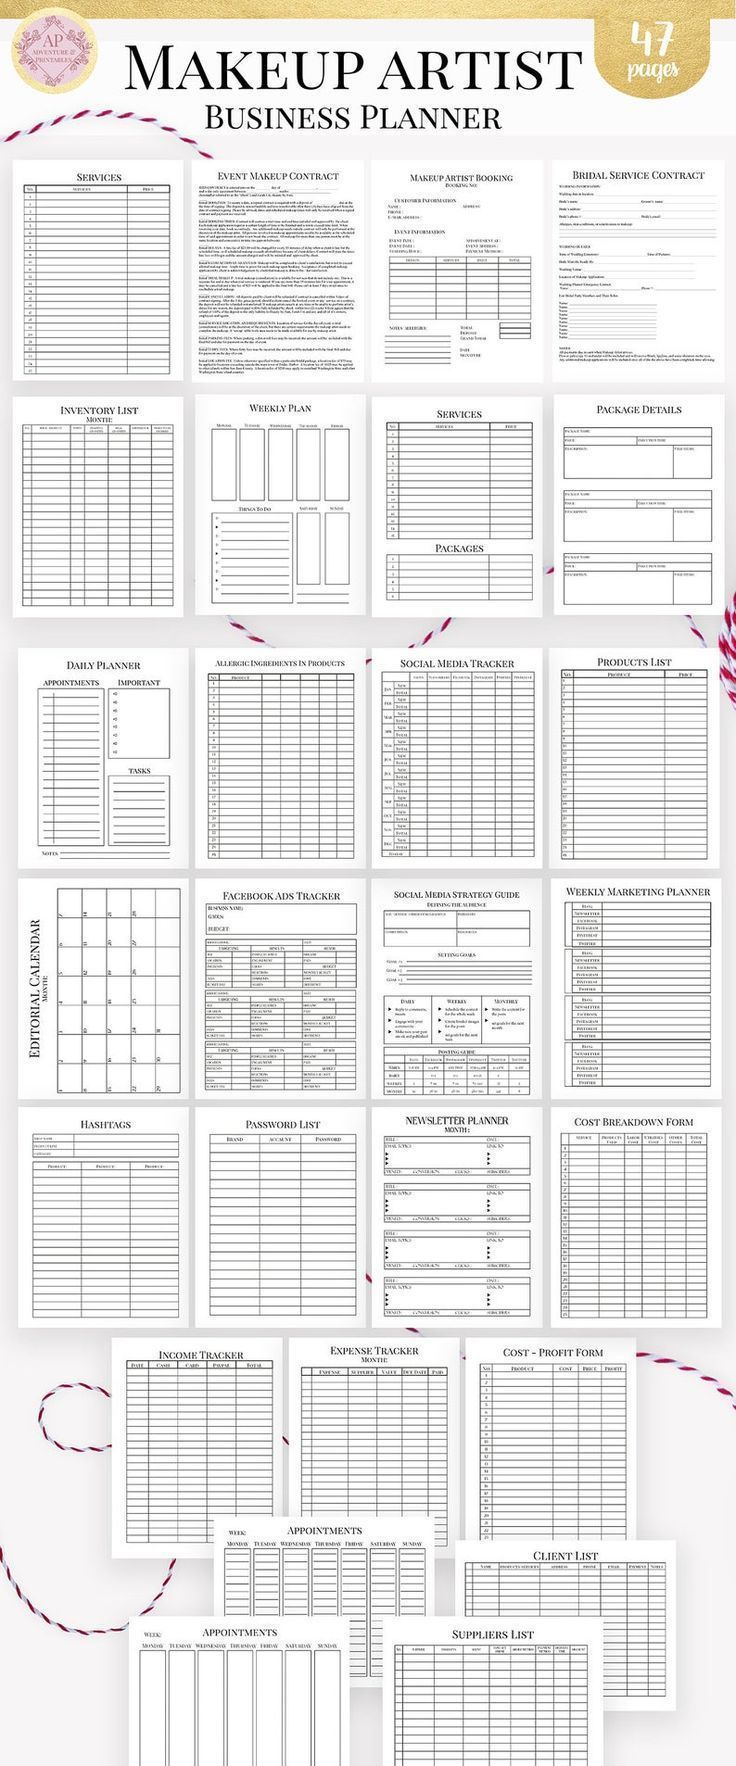 Makeup artist editable business planner and manager